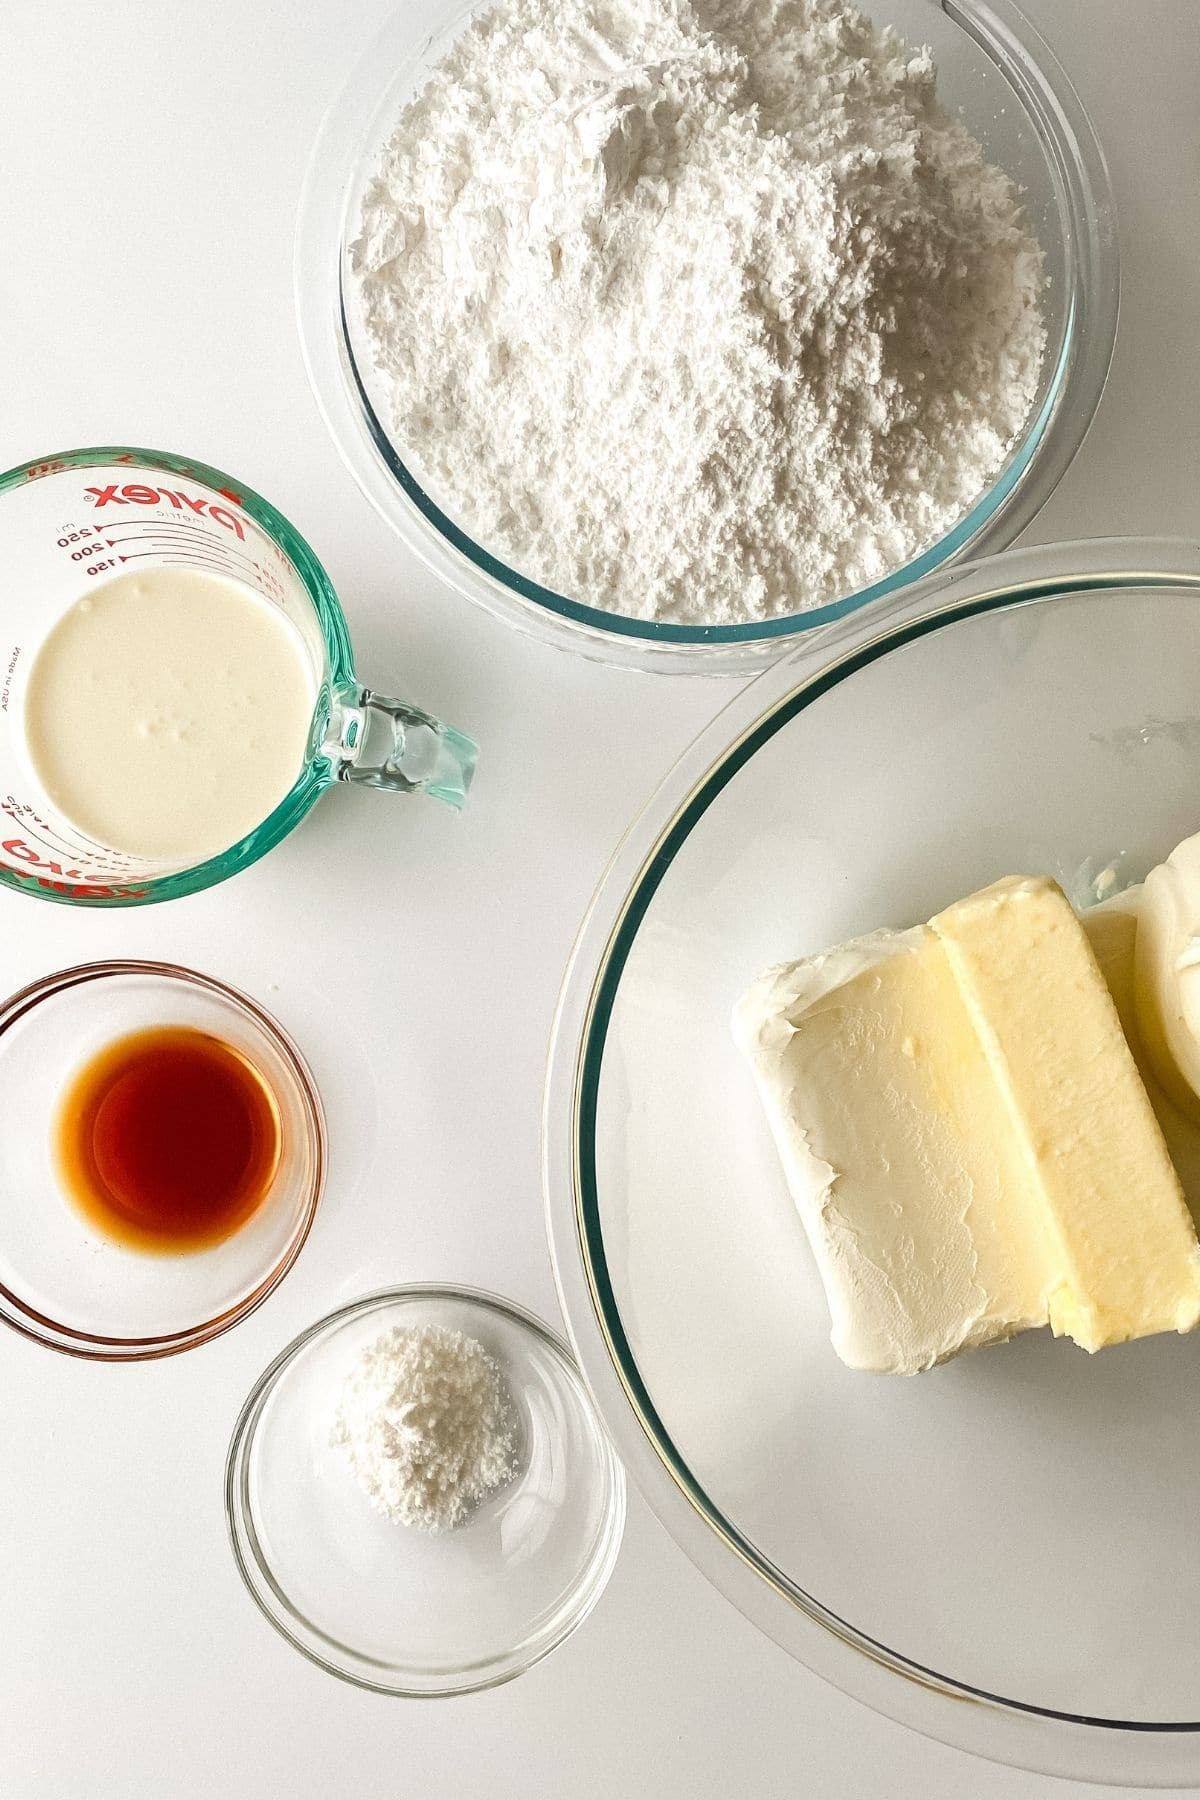 Ingredients for buttercream in glass bowls